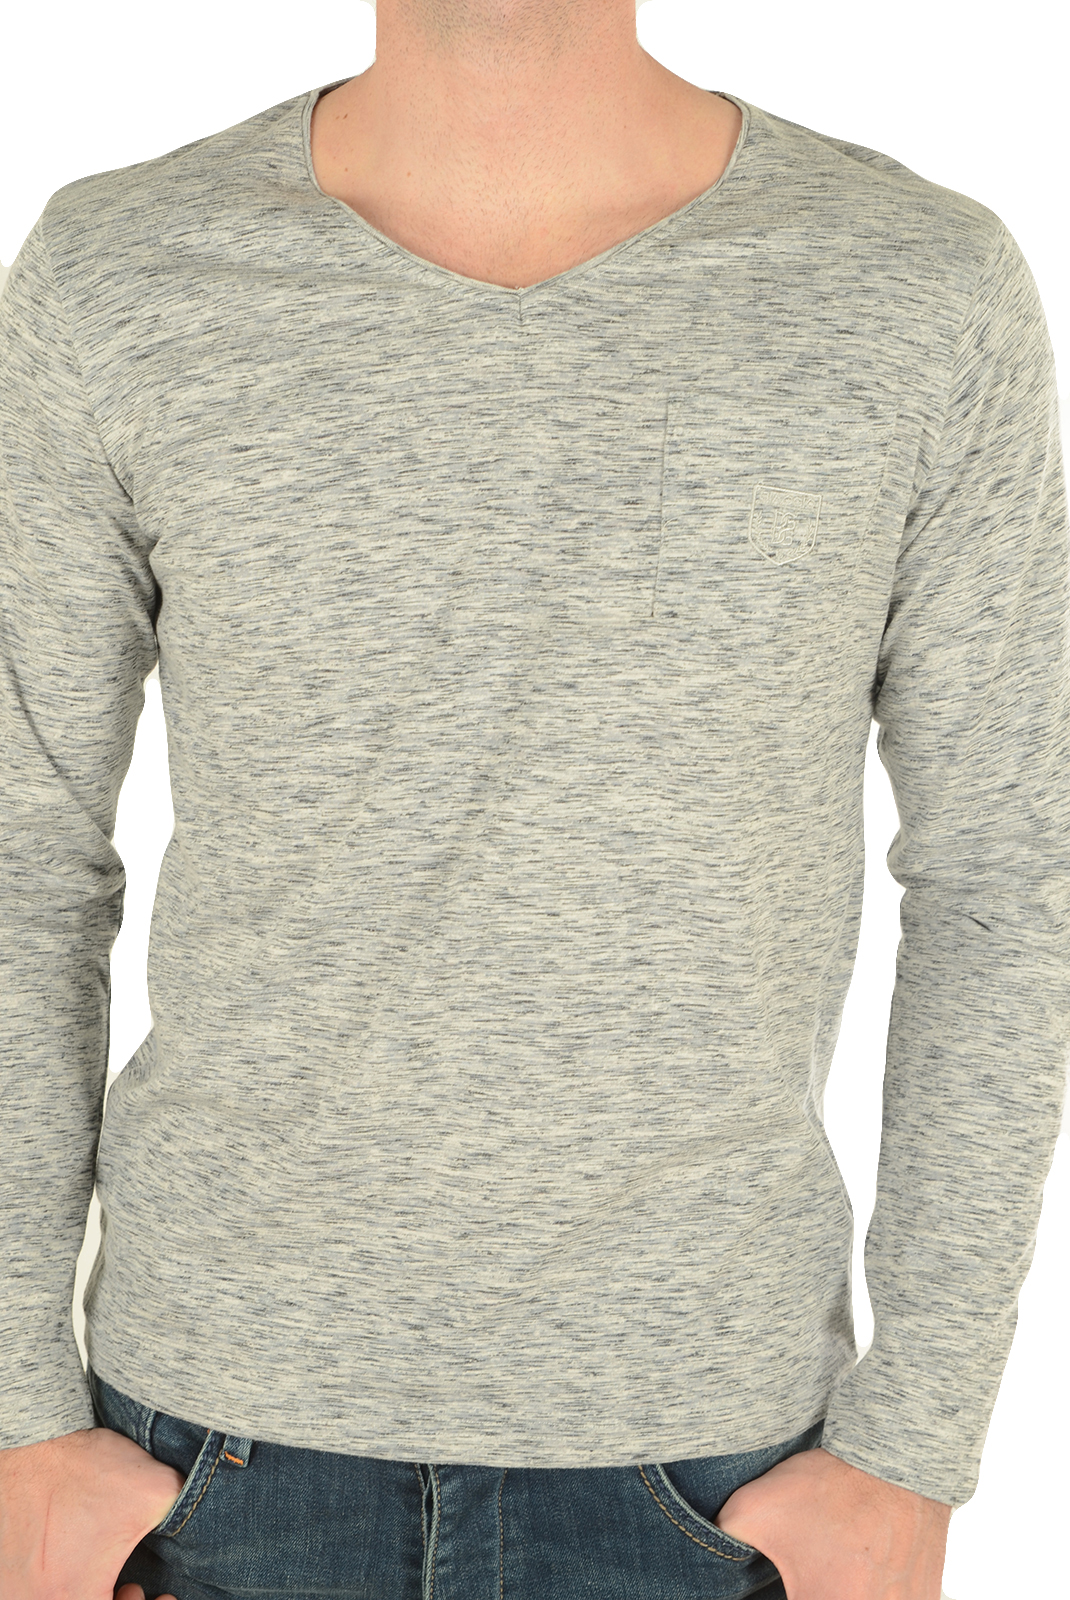 BIAGGIO JEANS TEE-SHIRT CHINE LUBOKIL GRIS HOMME